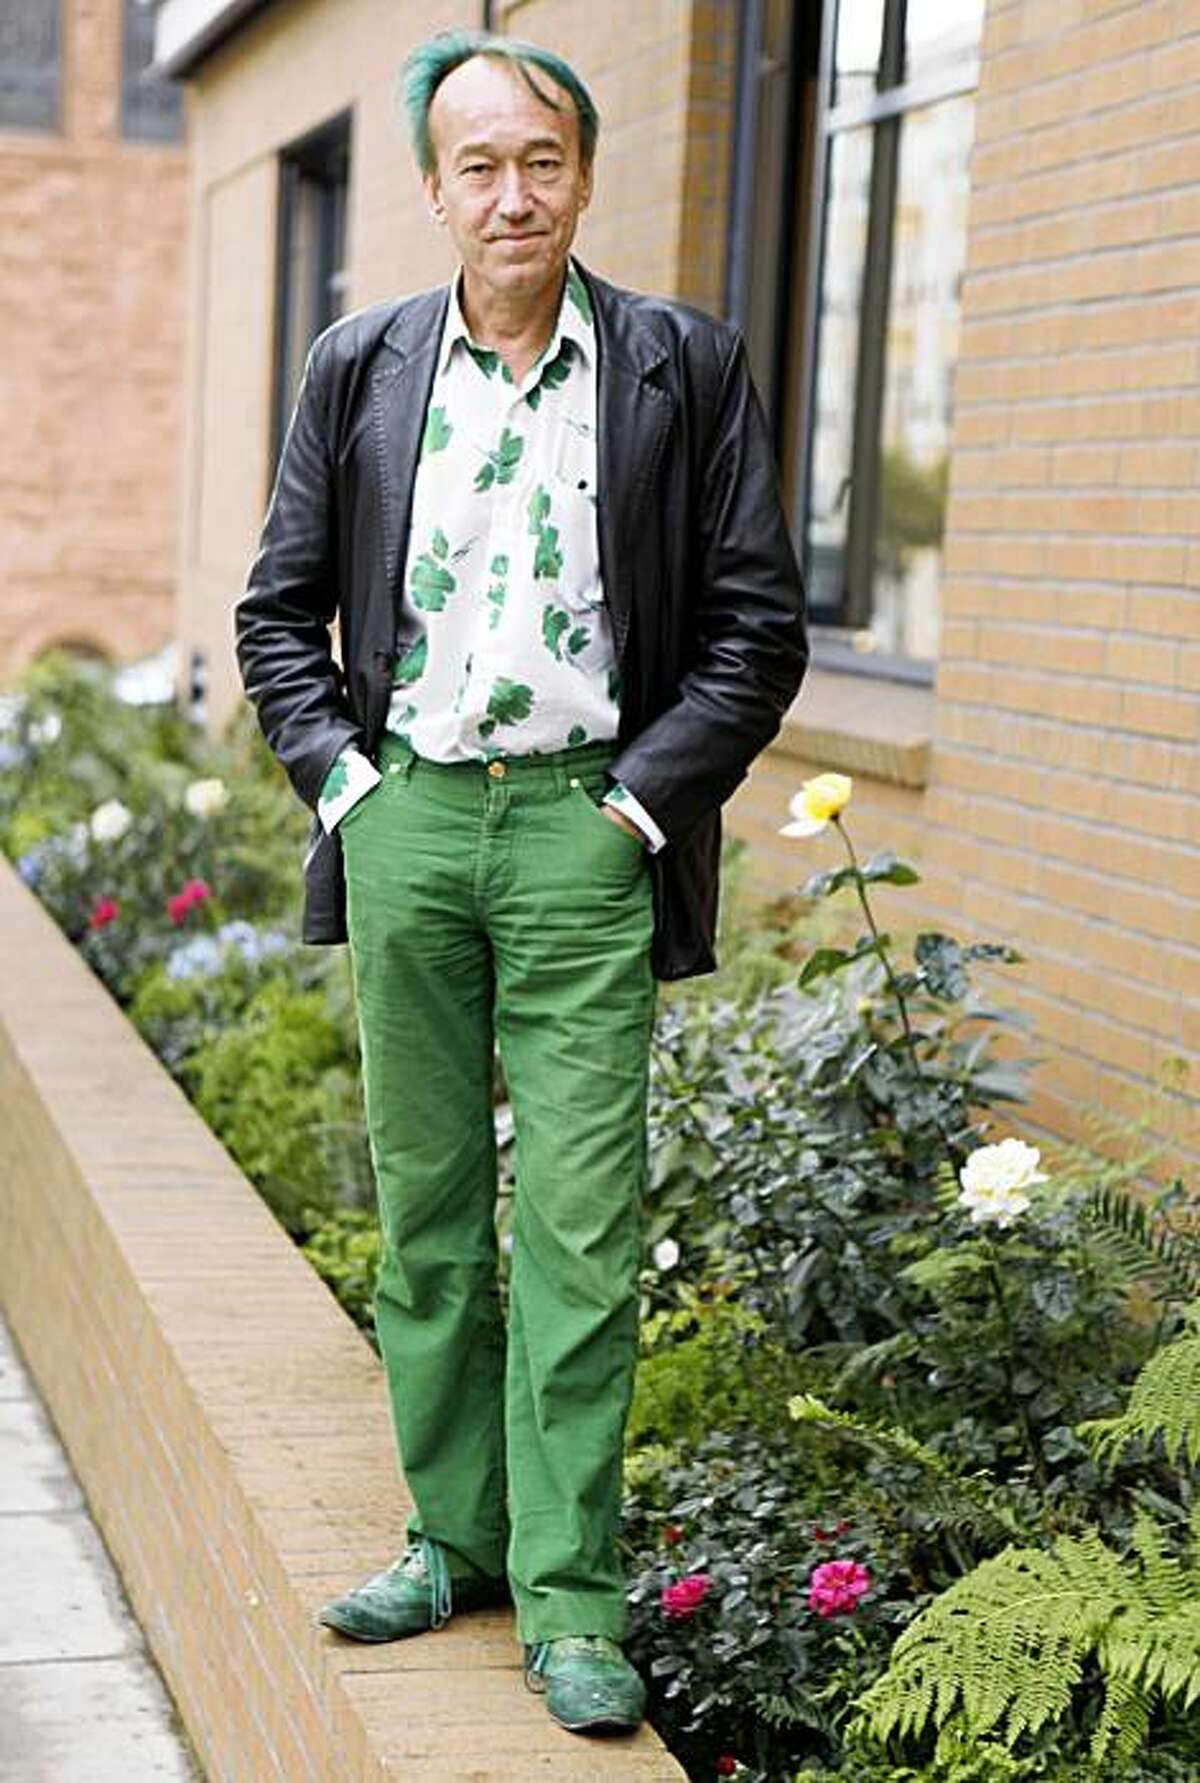 Patrick Blanc, world renowned garden designer, stands for a portrait at the Drew School, soon to be the home of his next vertical garden project, on Monday October 20, 2009 in San Francisco, Calif.